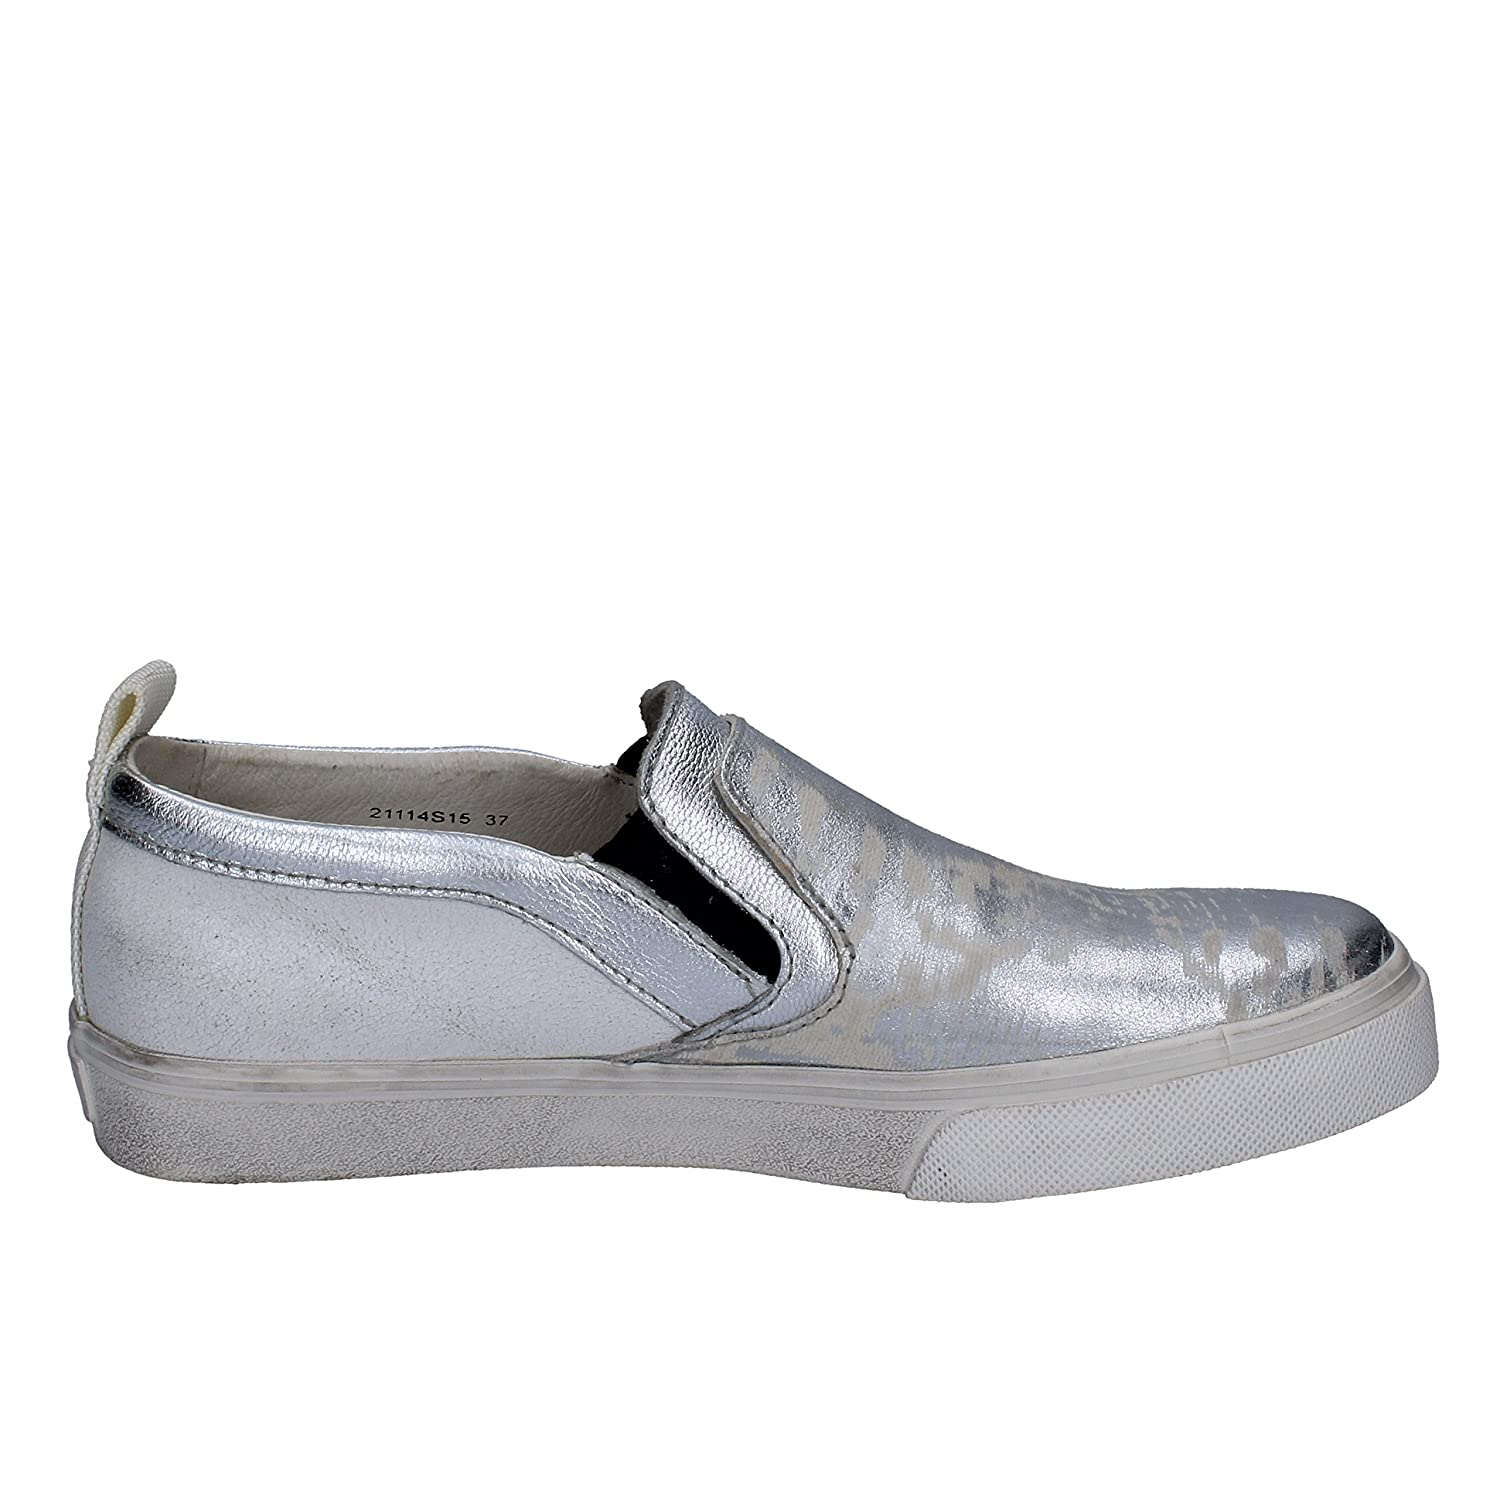 CRIME LONDON Loafers-Shoes Womens Leather Silver